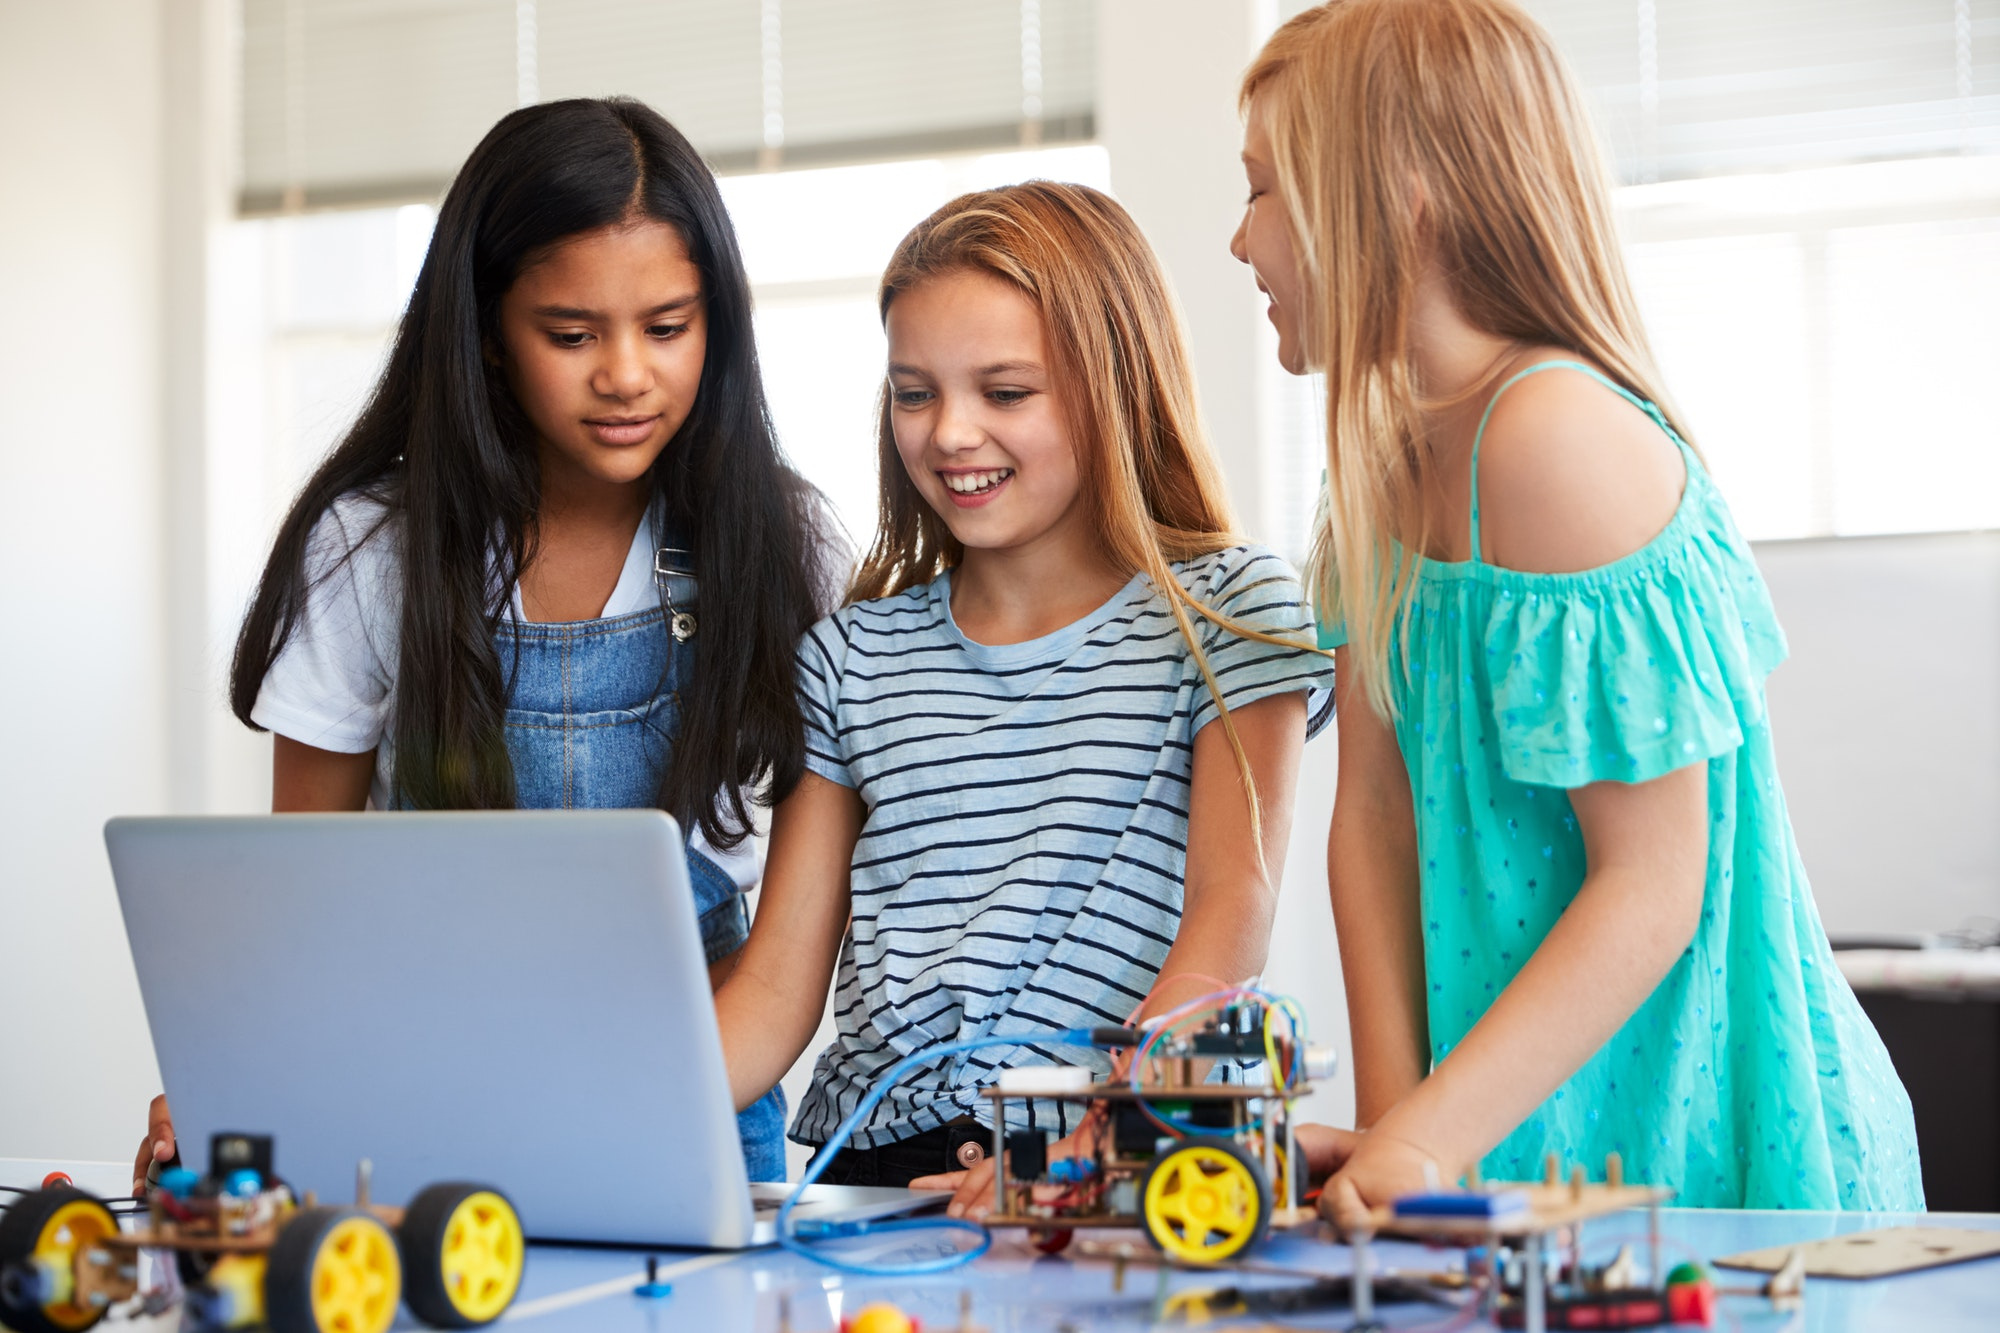 three-female-students-building-and-programing-robot-vehicle-in-after-school-computer-coding-class-1.jpg